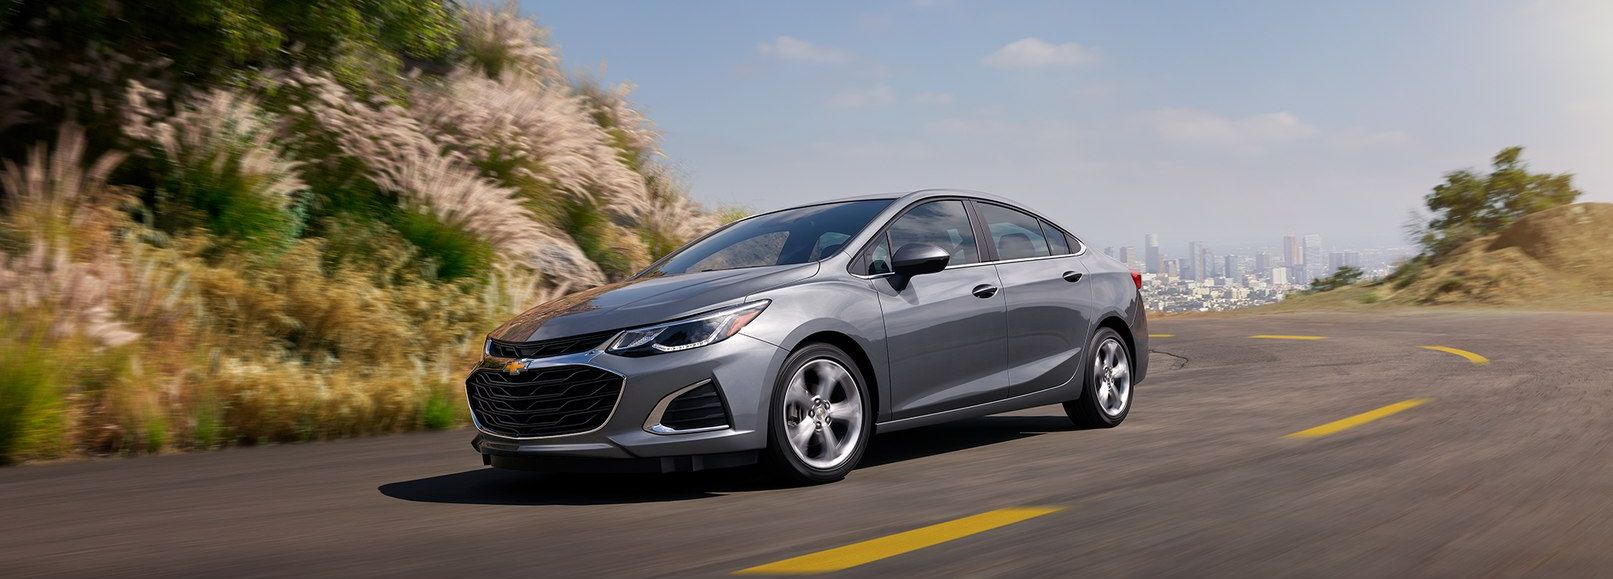 2019 Chevrolet Cruze Leasing near Fairfax, VA